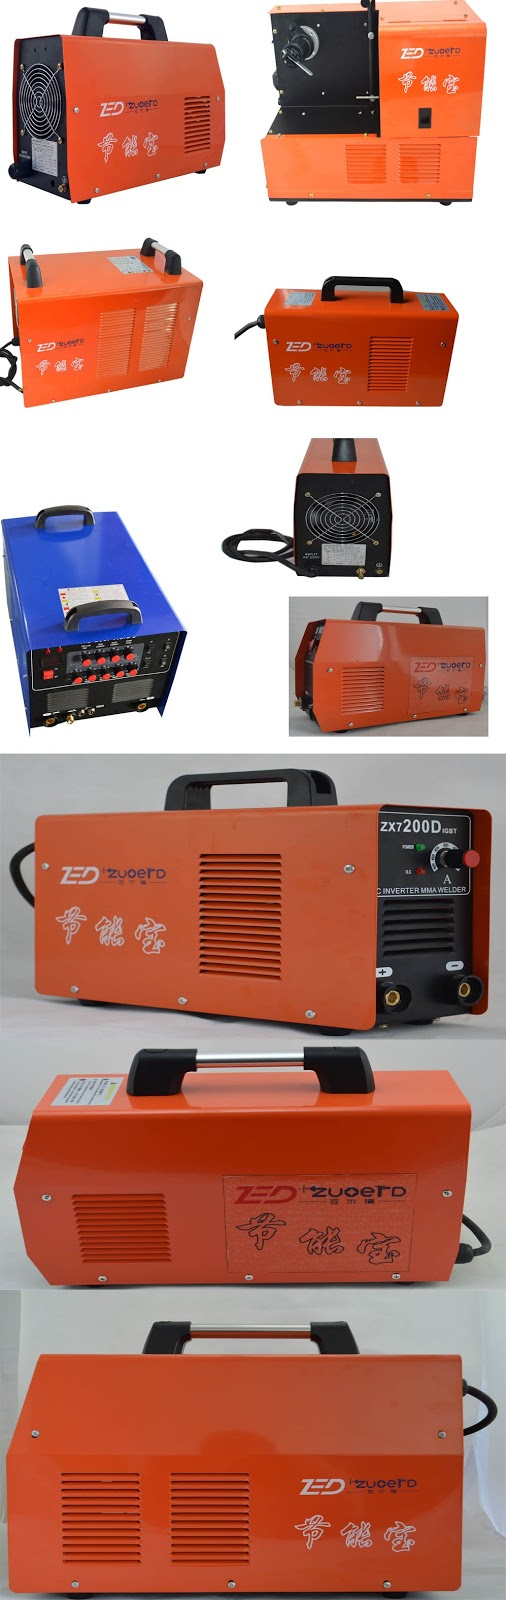 Hand Tools Electric Power Mos Dc Inverter Tig Welder Igbt Gas Welding Machine Block Diagram Shielded Air Plasma Cutting Manual Arc